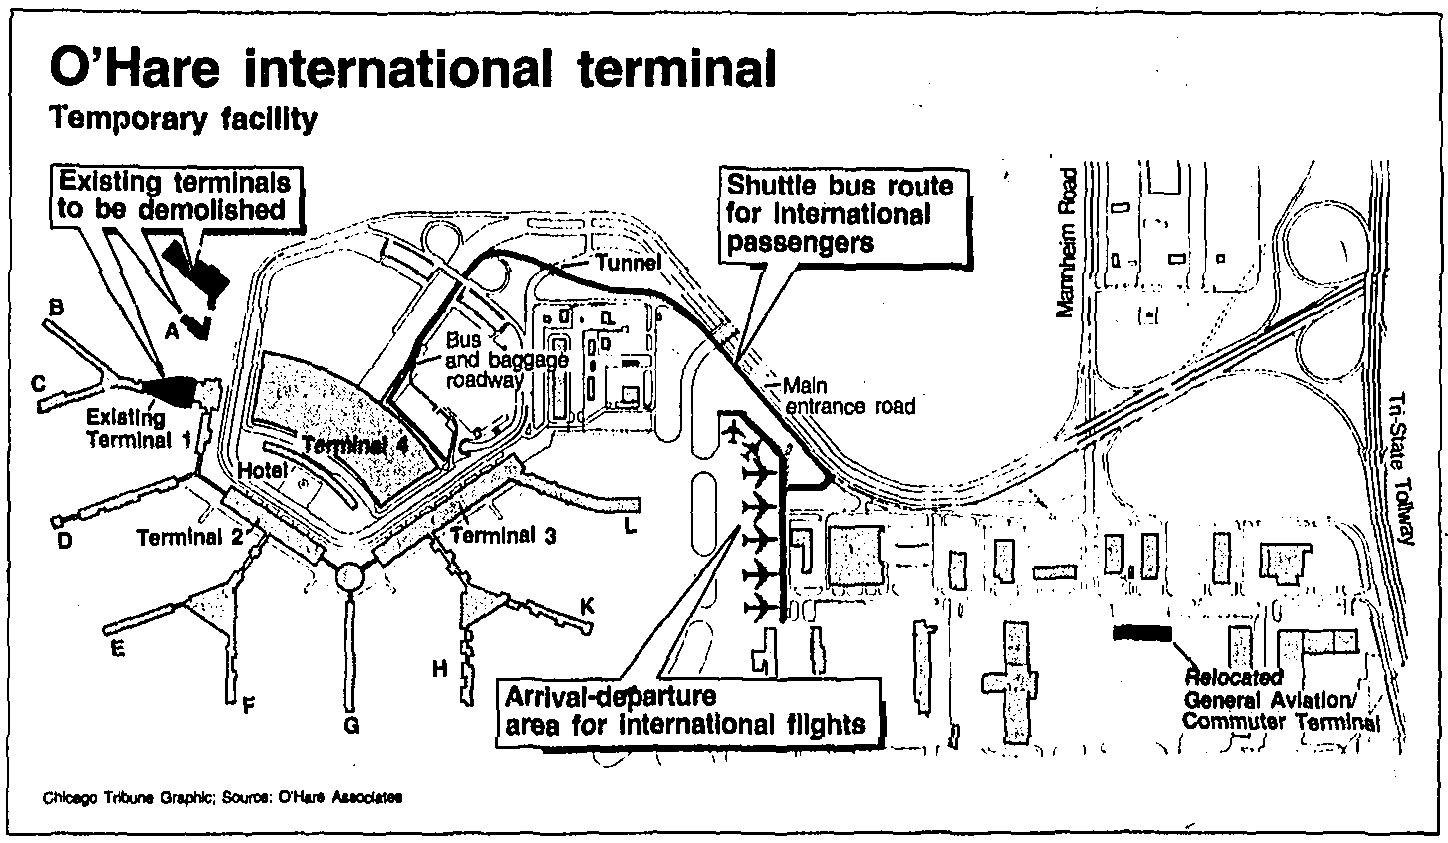 From farmland to 'Global Terminal': O'Hare International